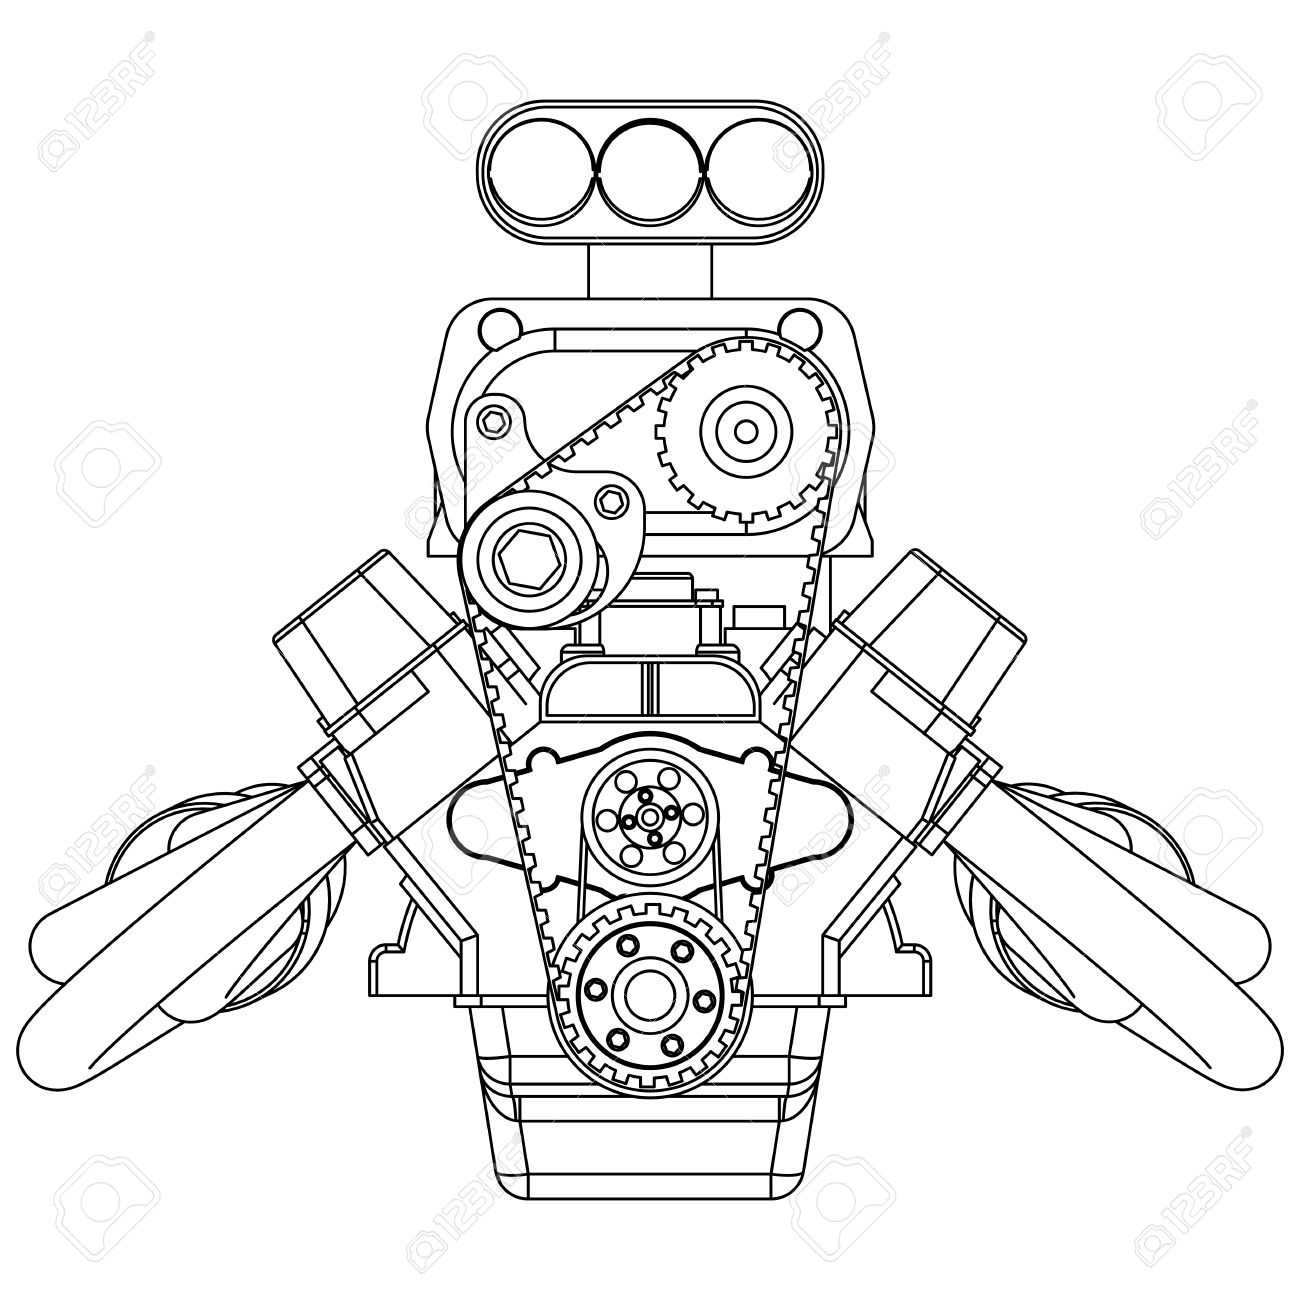 Schematic drawing of Hot Rod Engine. Vector illustration Stock Vector - 52023386